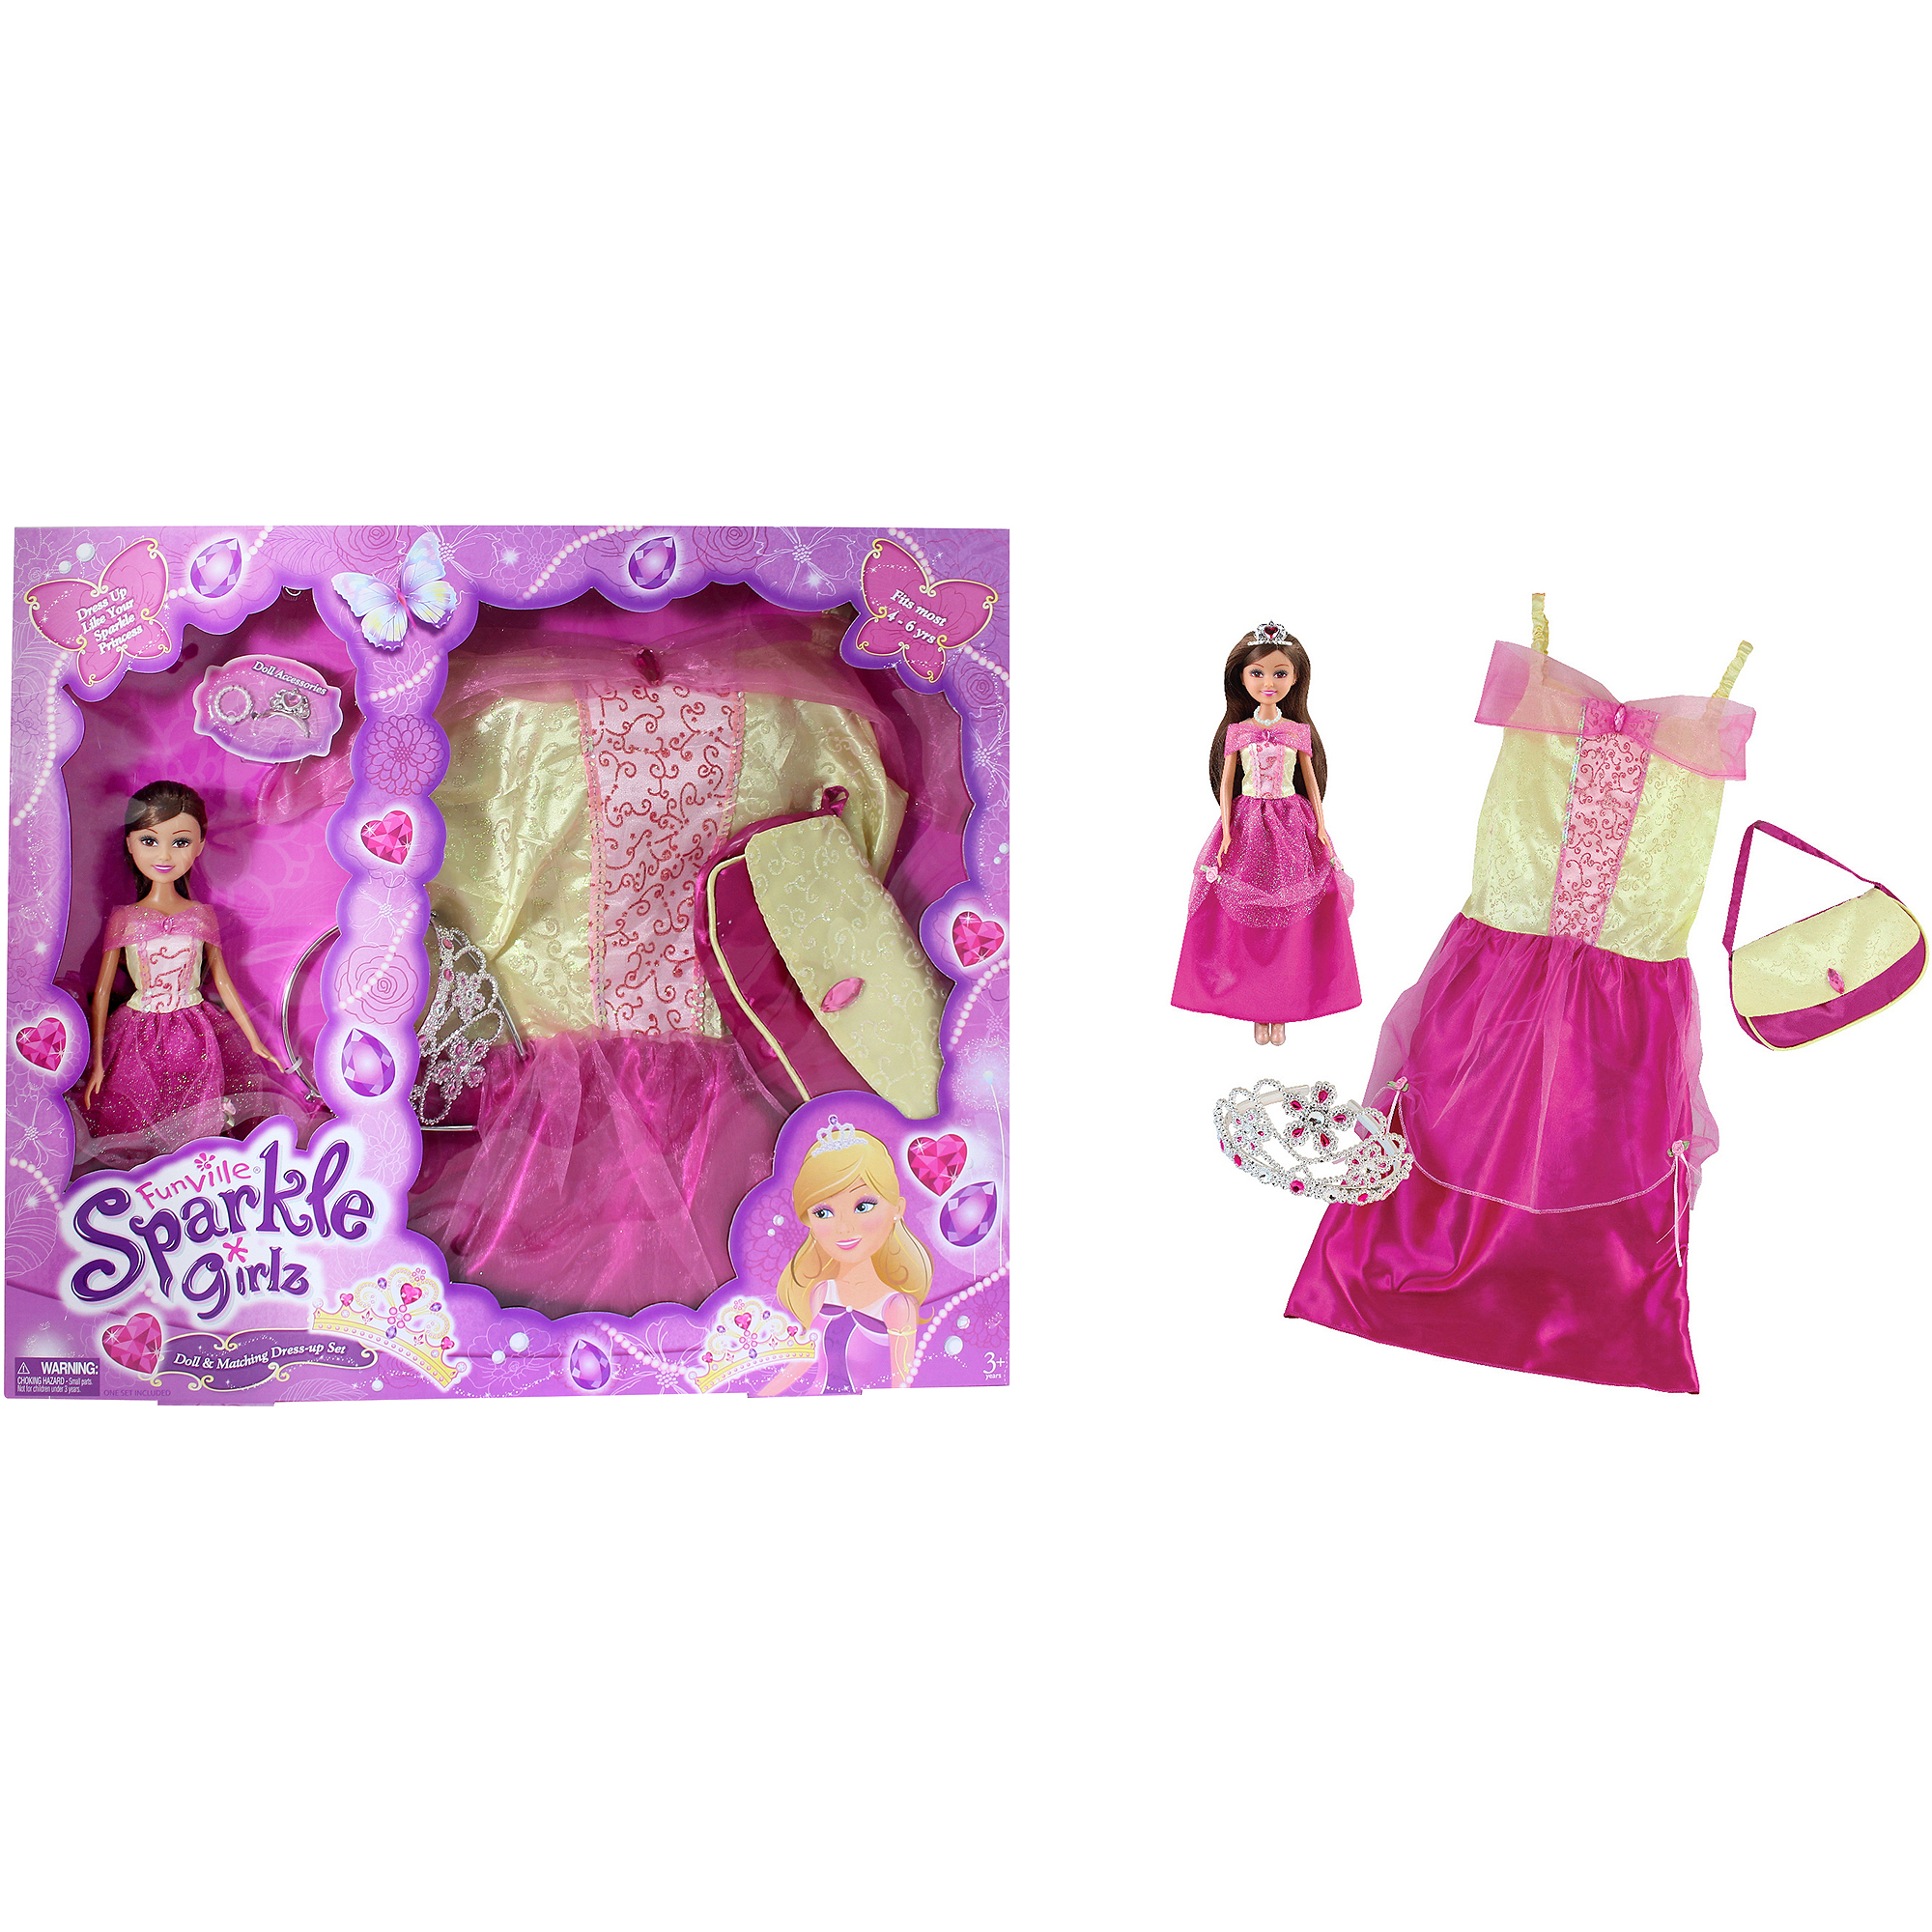 Funville sparkle girlz doll with dress up, princess, brown hair